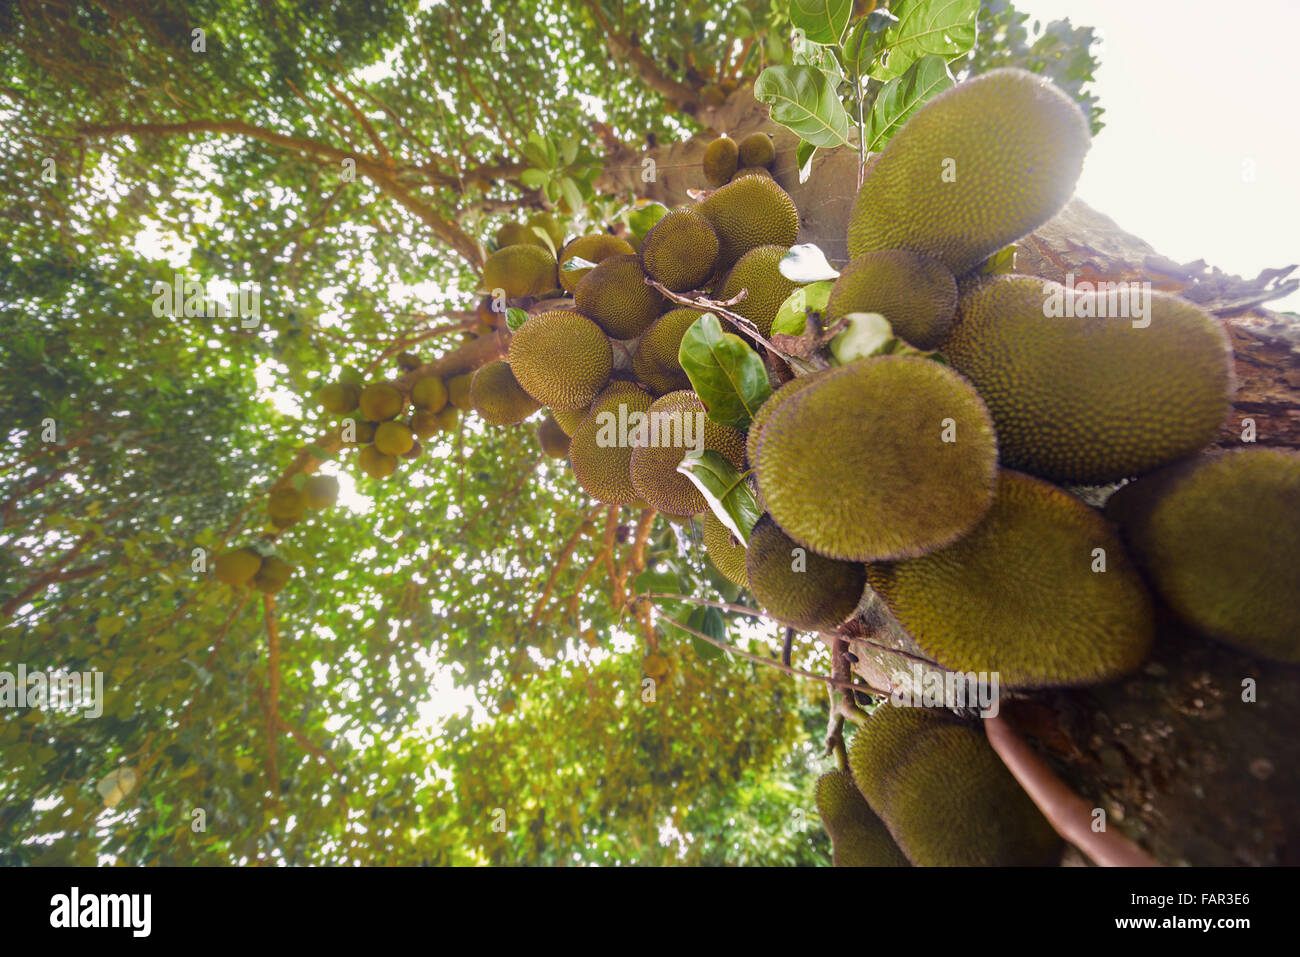 Jackfruit tree full of fruits. Image with depth of field and focus on center. - Stock Image